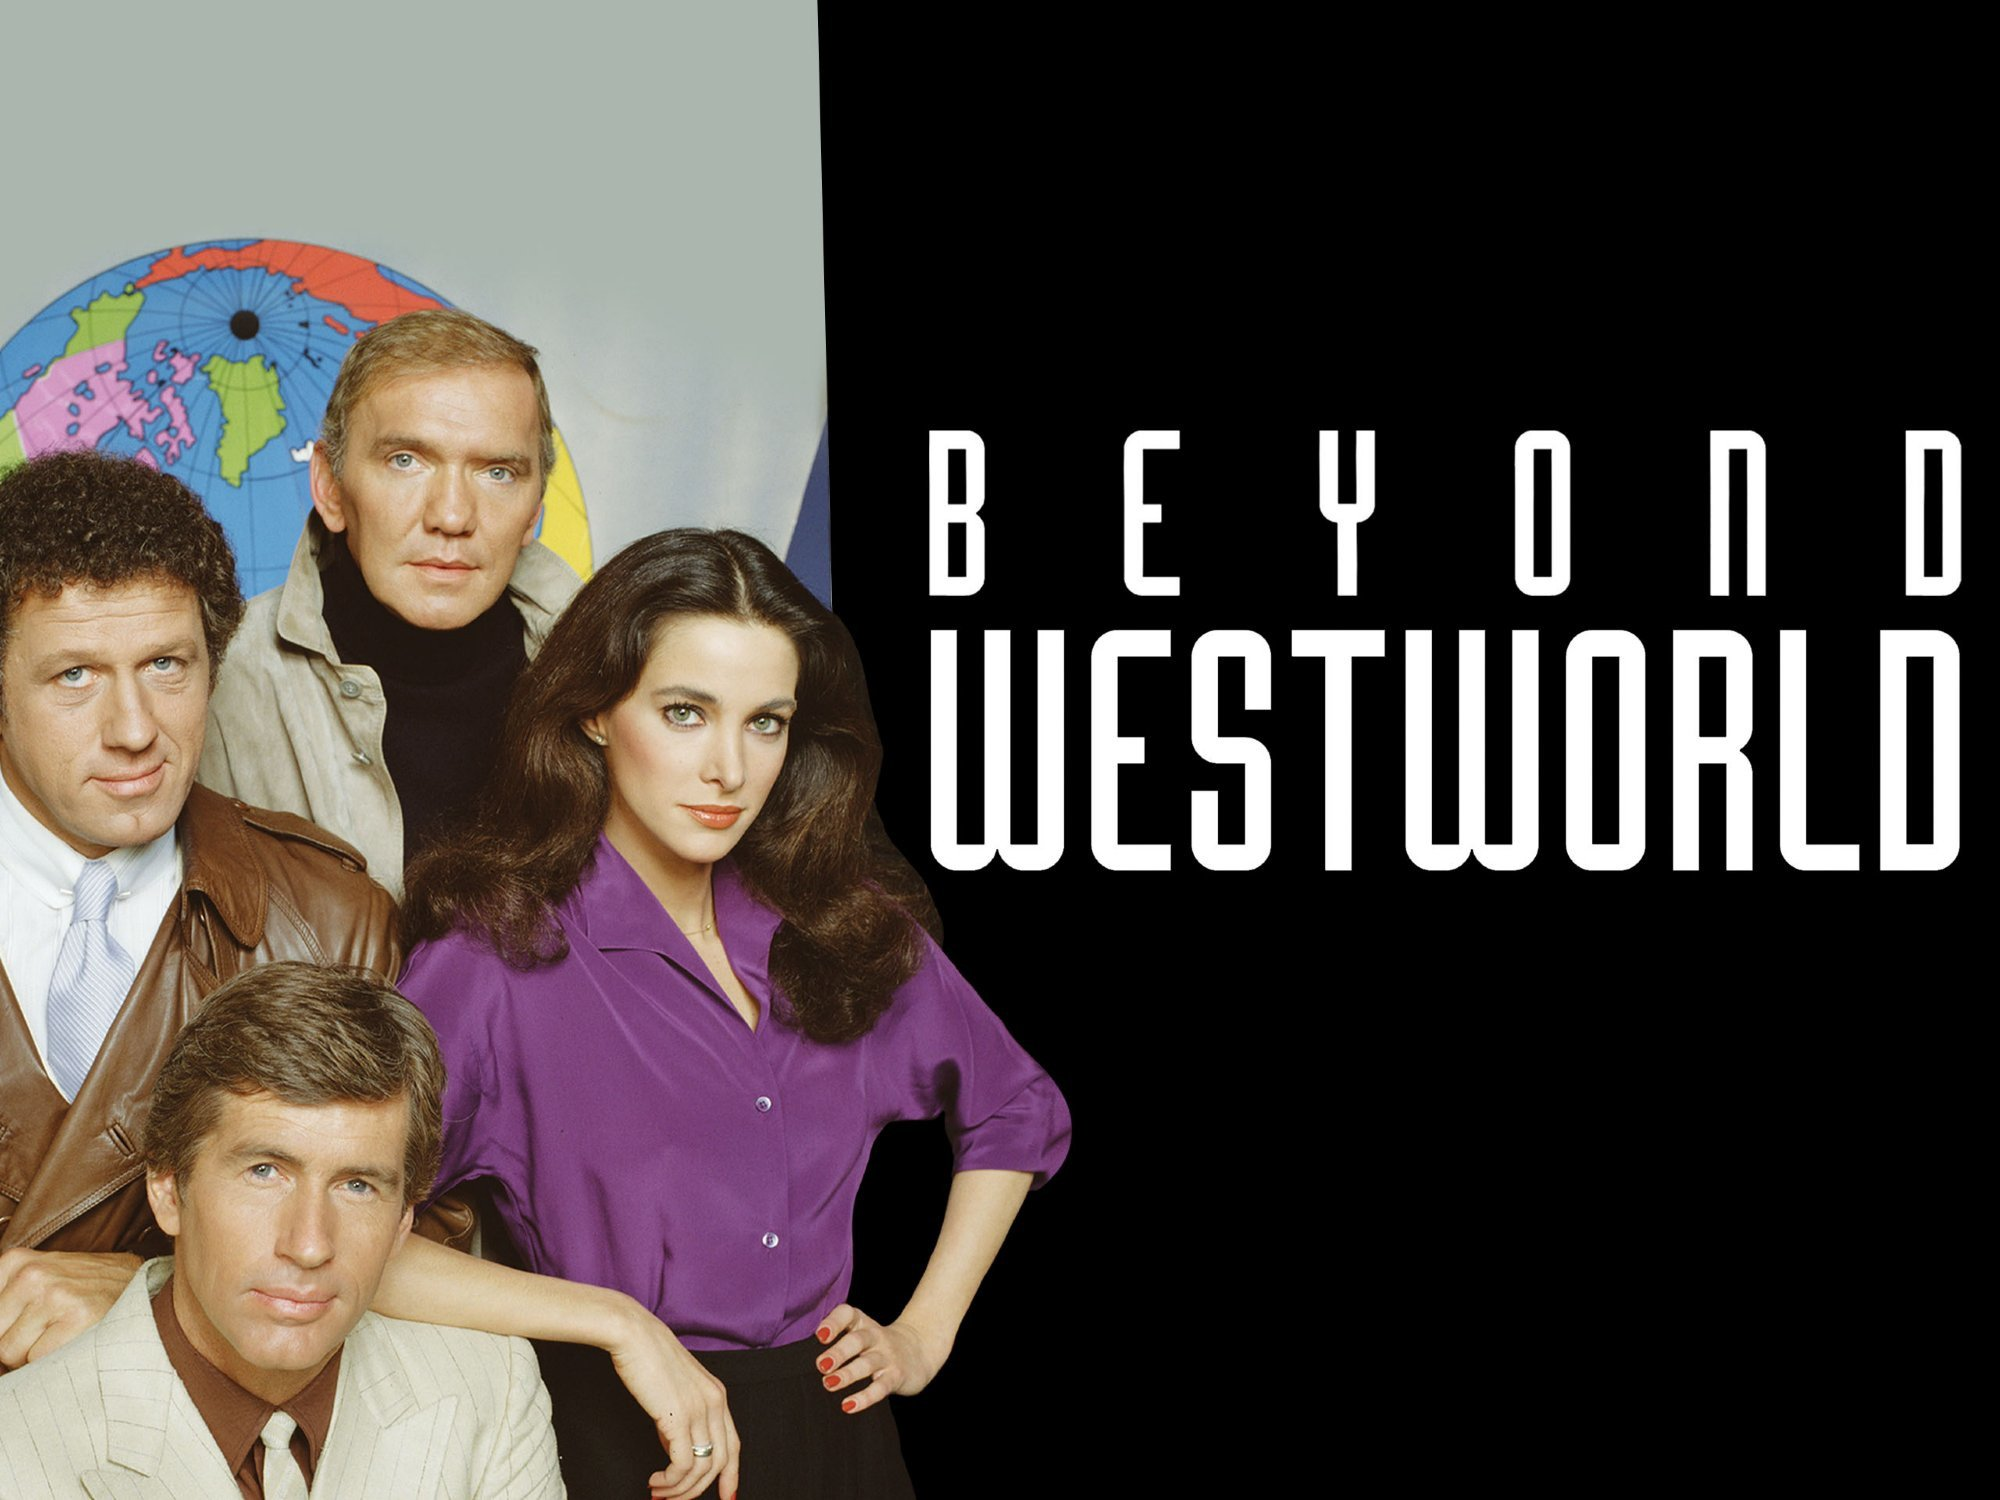 Watch Beyond Westworld: The Complete Series | Prime Video